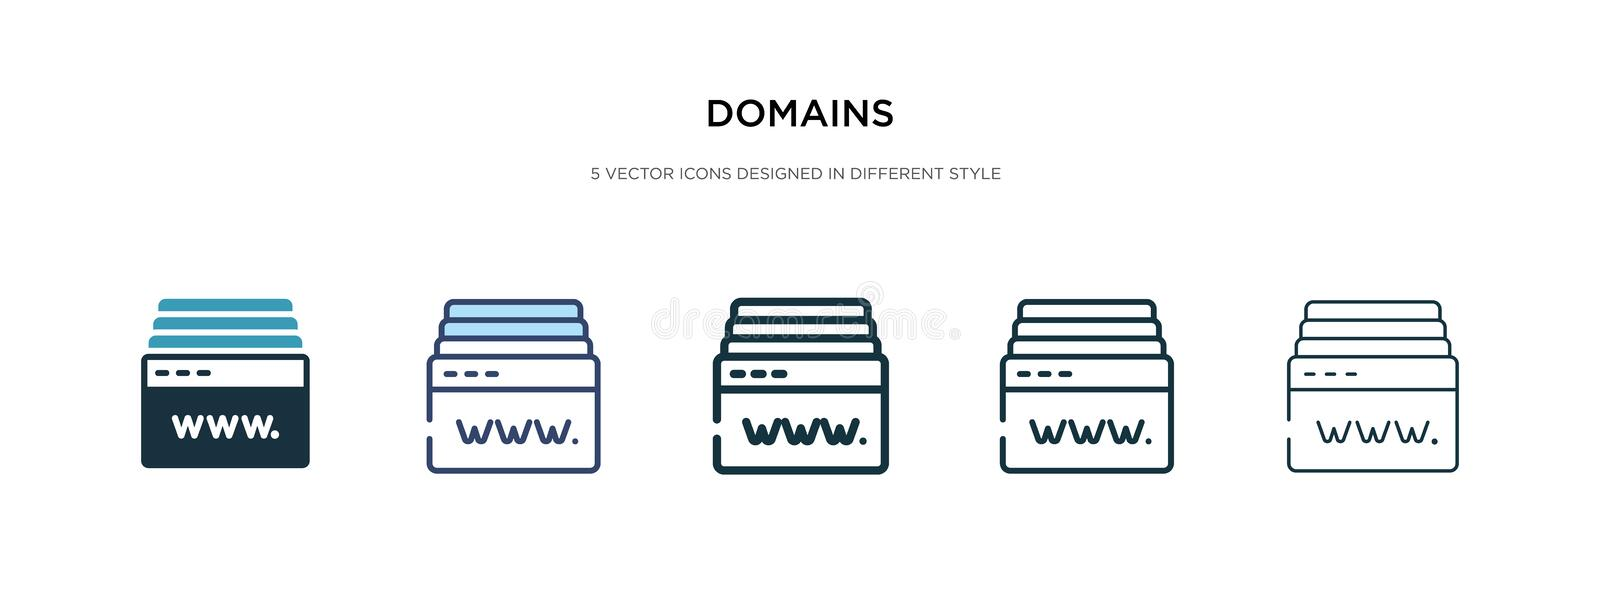 Domains icon in different style vector illustration. two colored and black domains vector icons designed in filled, outline, line vector illustration